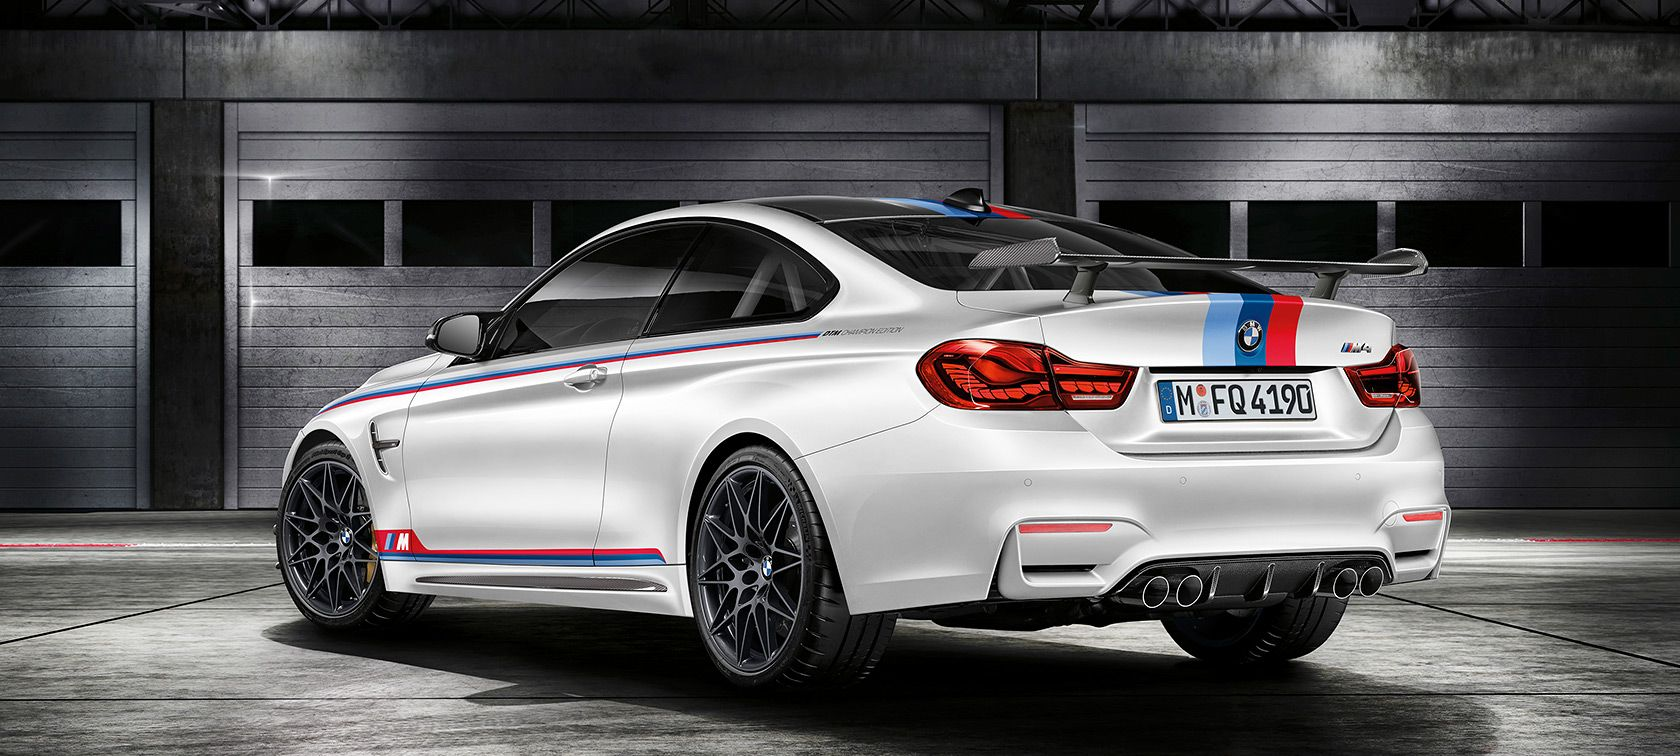 The bmw m4 dtm champion edition